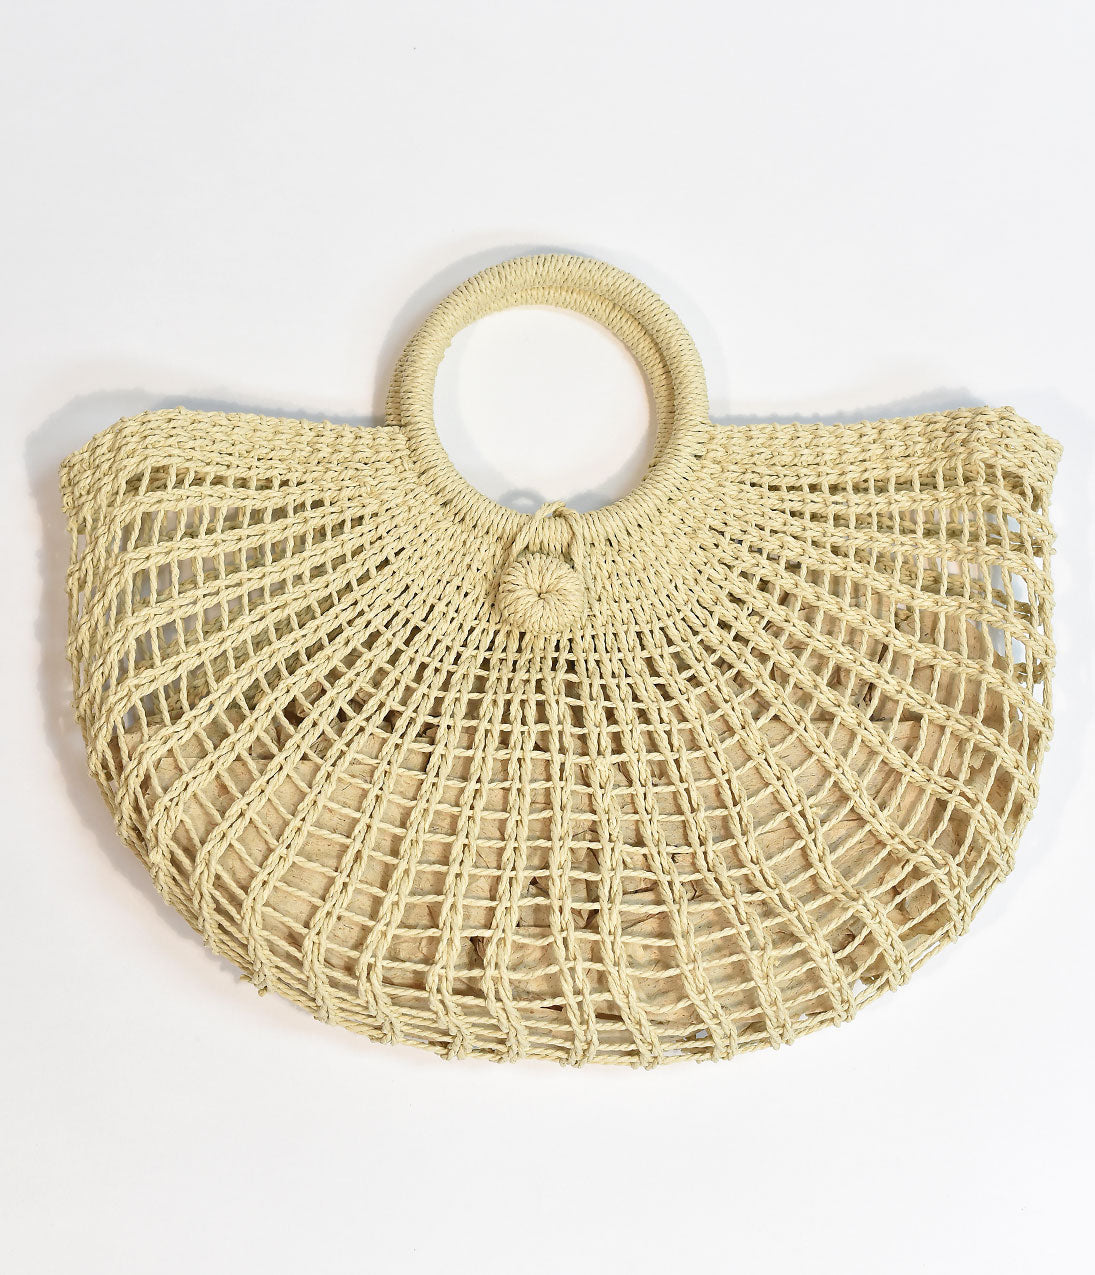 Vintage & Retro Handbags, Purses, Wallets, Bags Ivory Woven Straw Tote Bag $34.00 AT vintagedancer.com